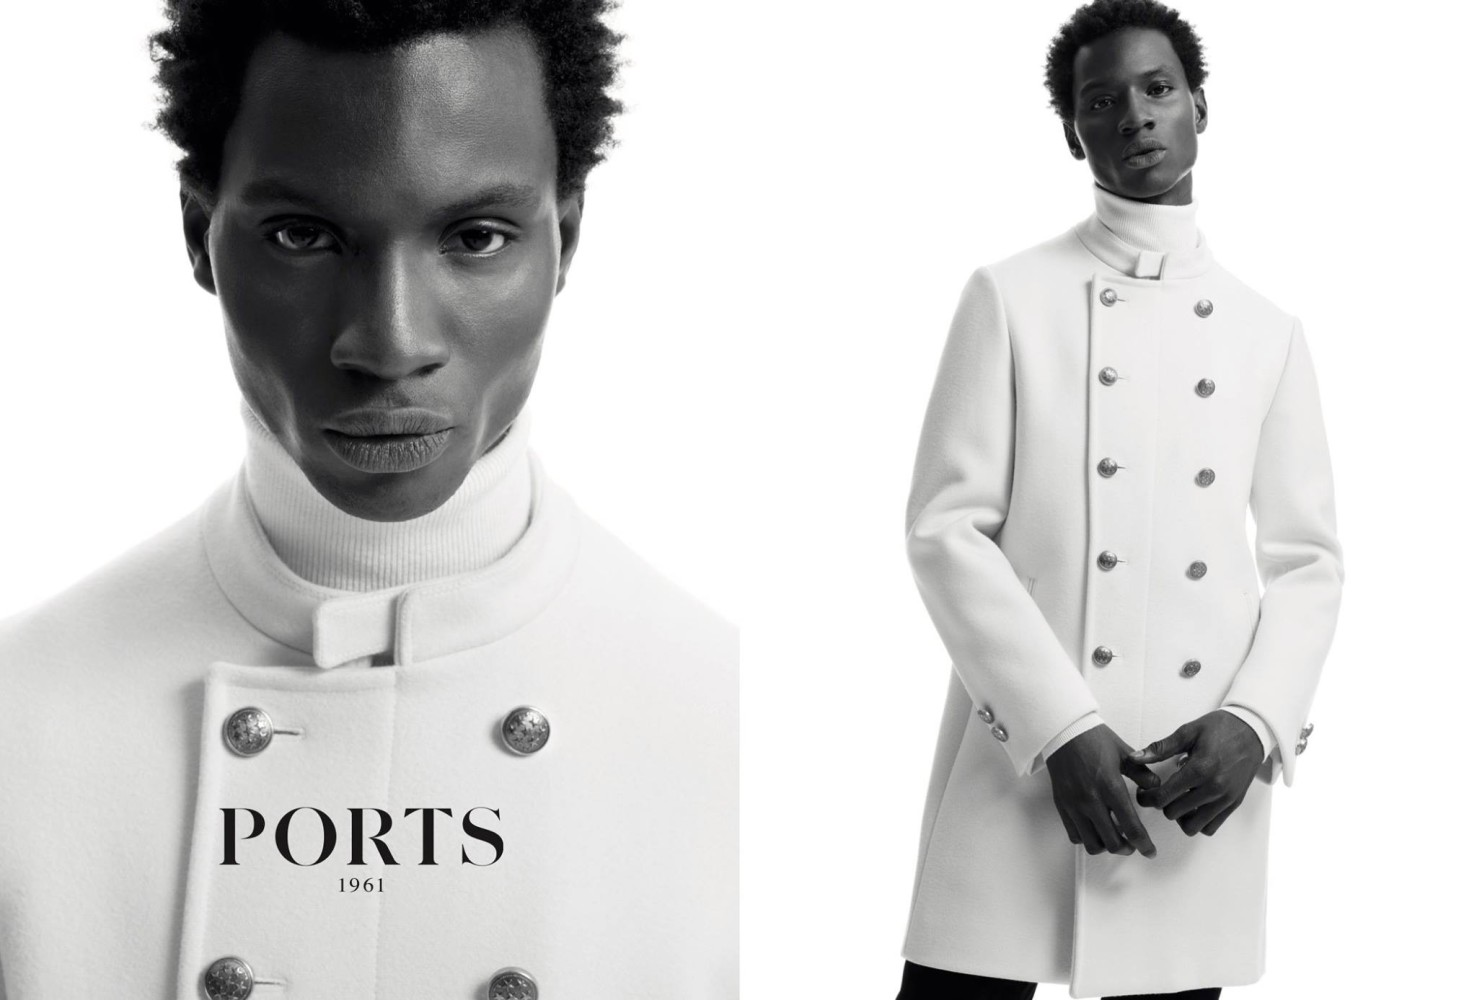 SPOTTED: Adonis for Ports 1961 Fall/Winter 2016 Campaign